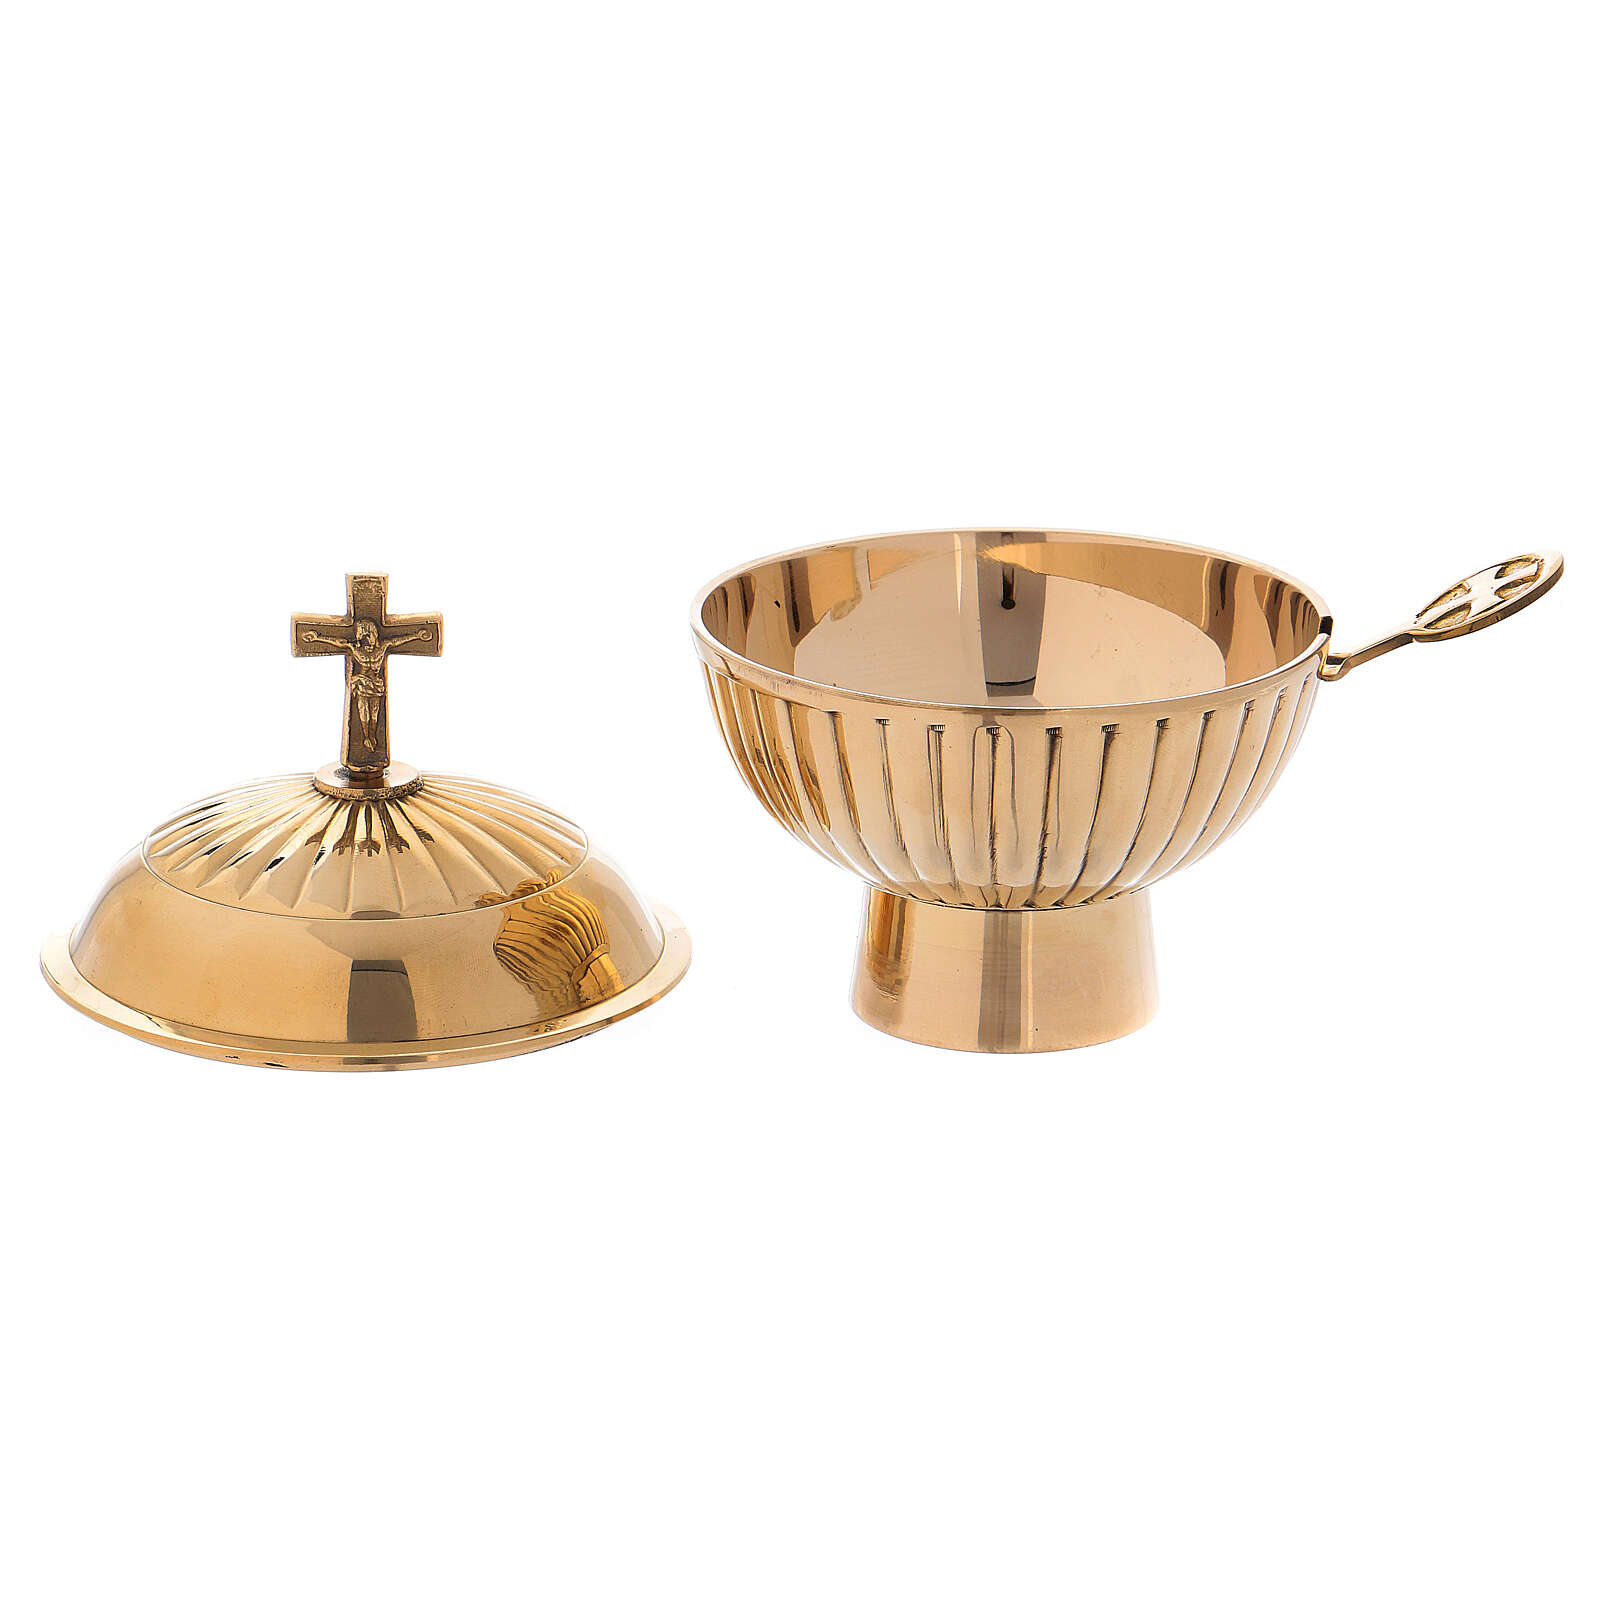 Gold plated brass boat with cross h 4 3/4 in 3